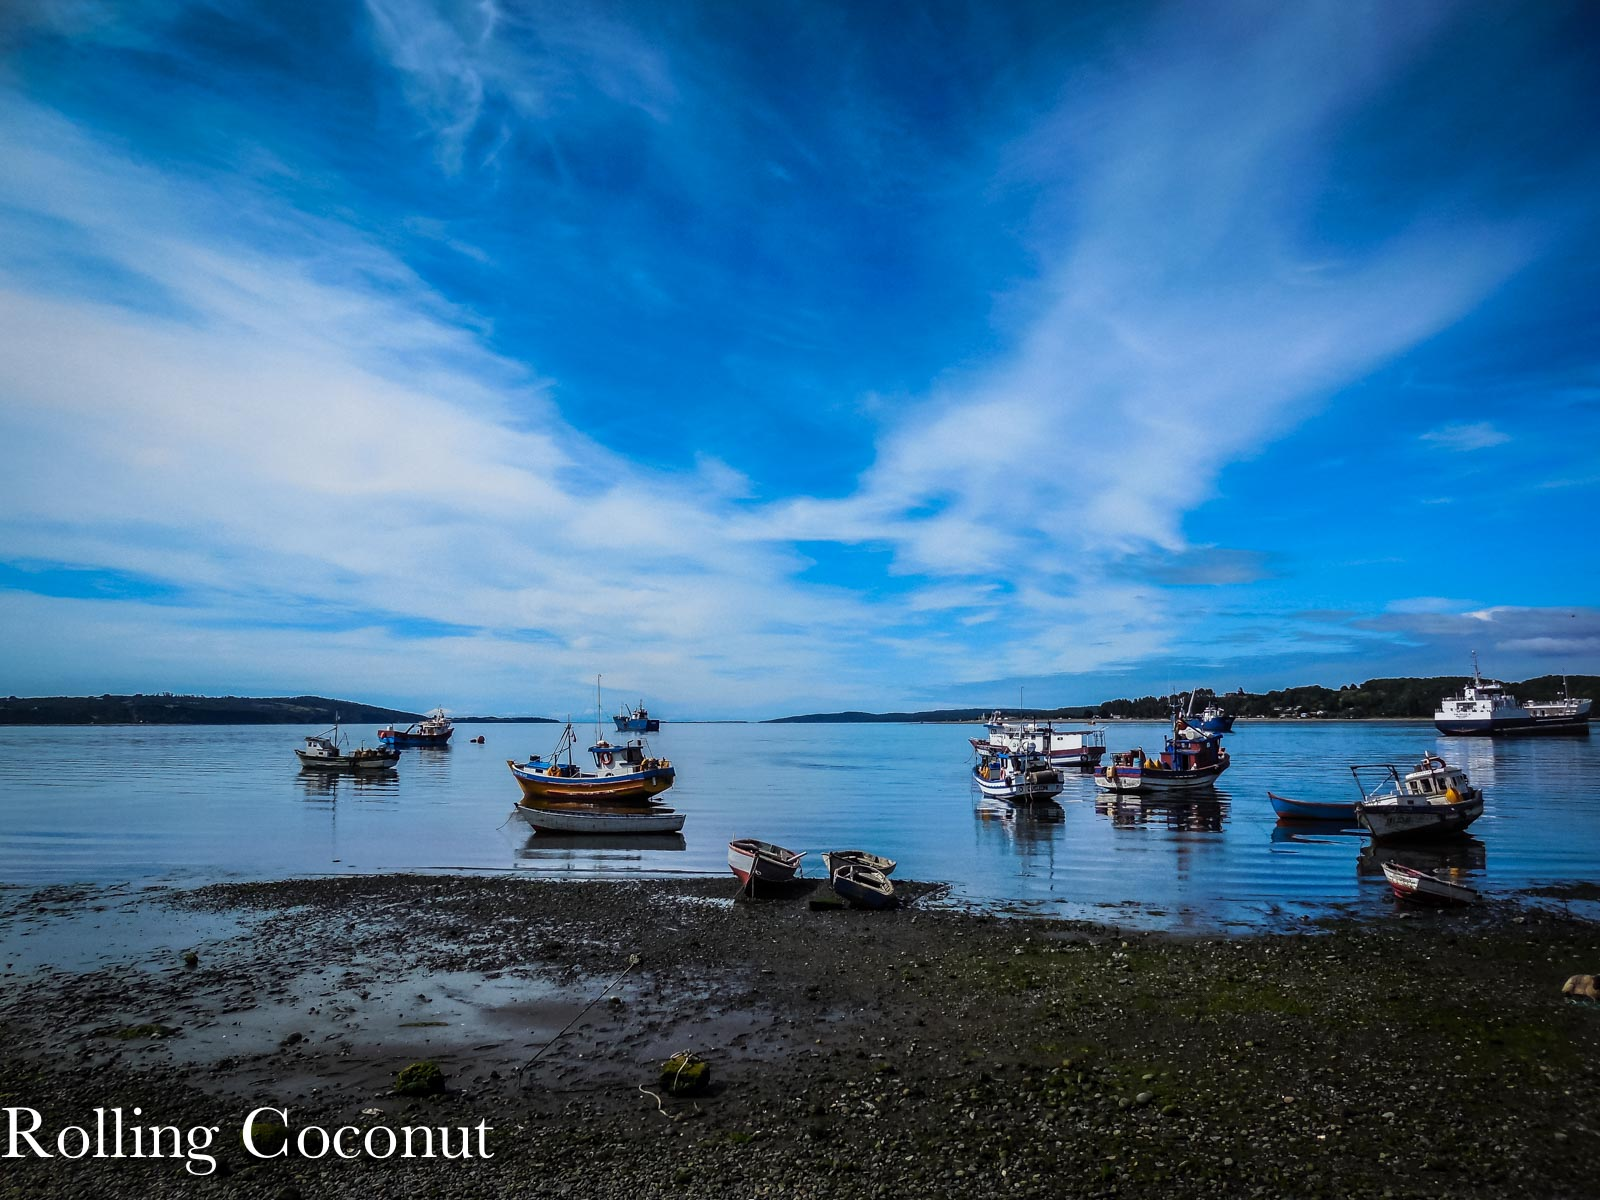 Chile Chiloe Quellon Hostel Quellon Outside View Rolling Coconut OOAworld Photo Ooaworld